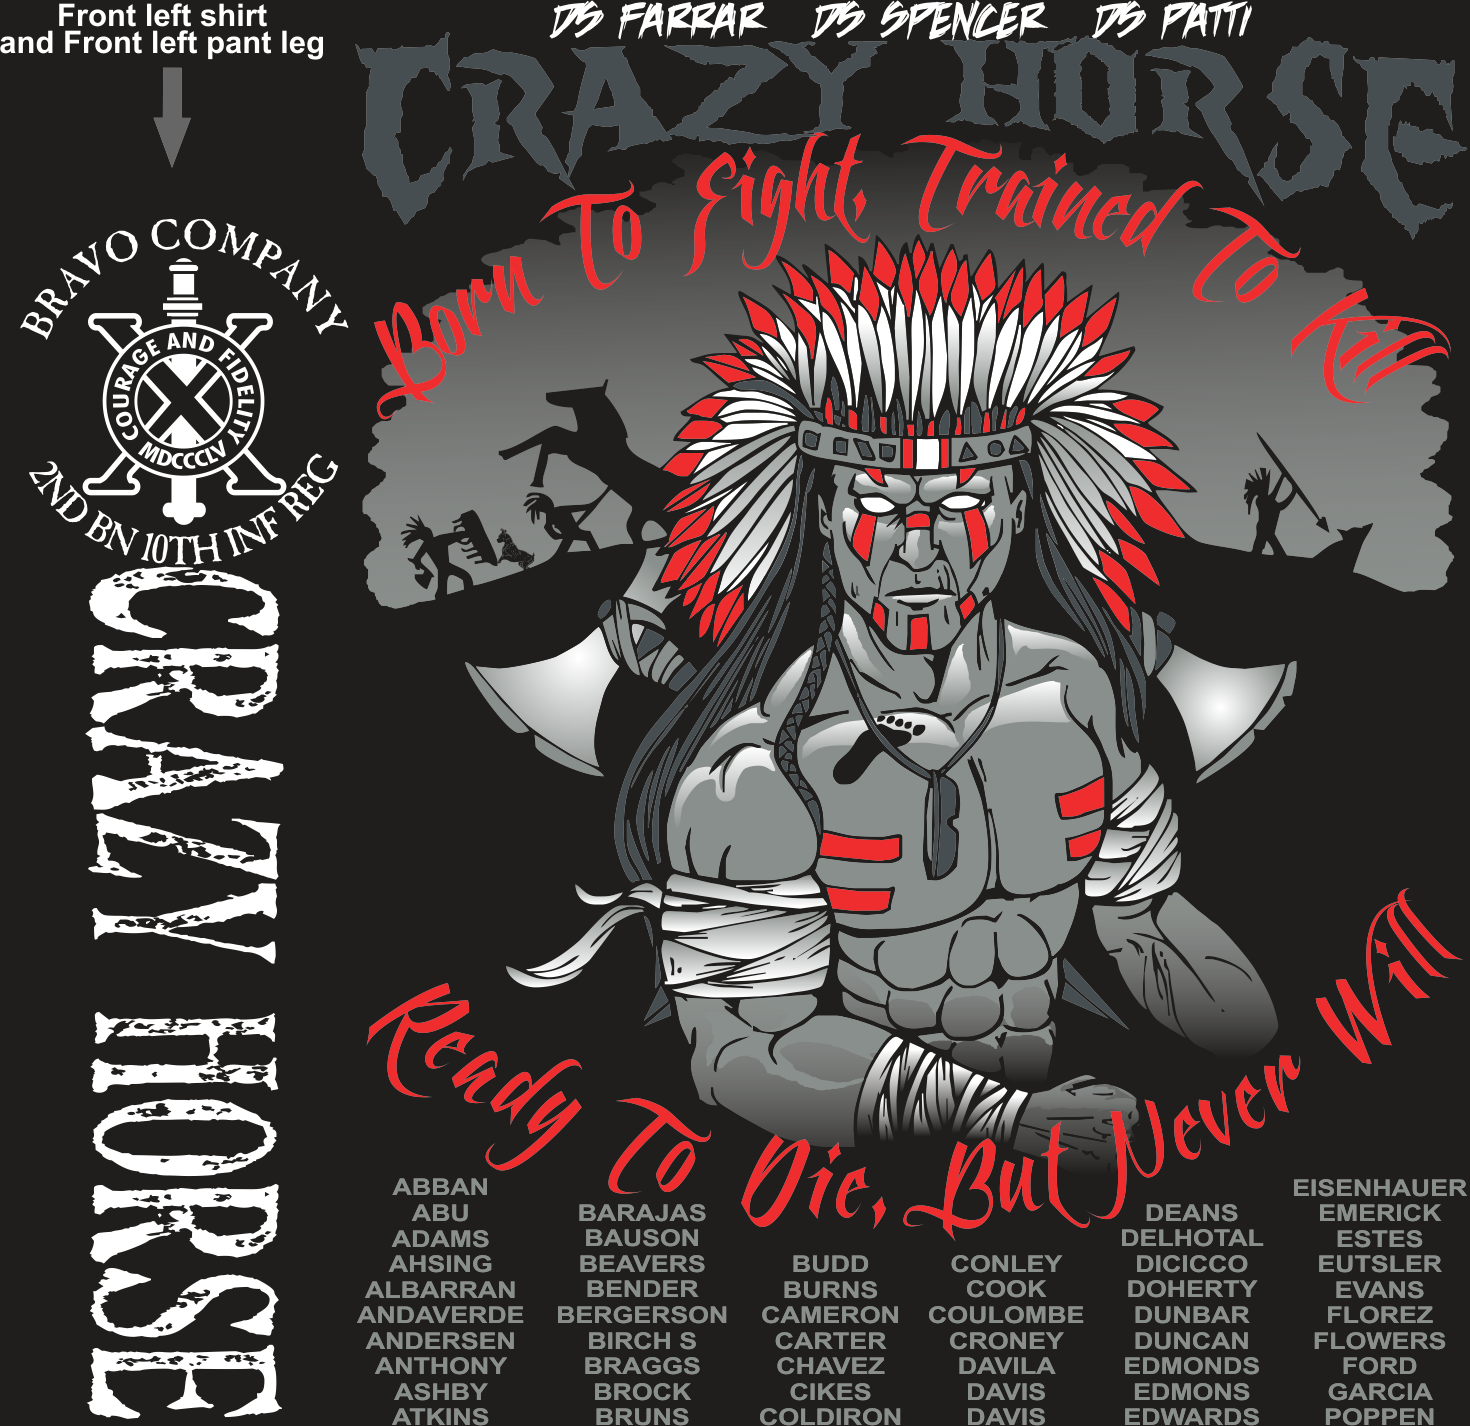 BRAVO 2-10 CRAZY HORSE GRADUATING DAY 10-20-2016 digital